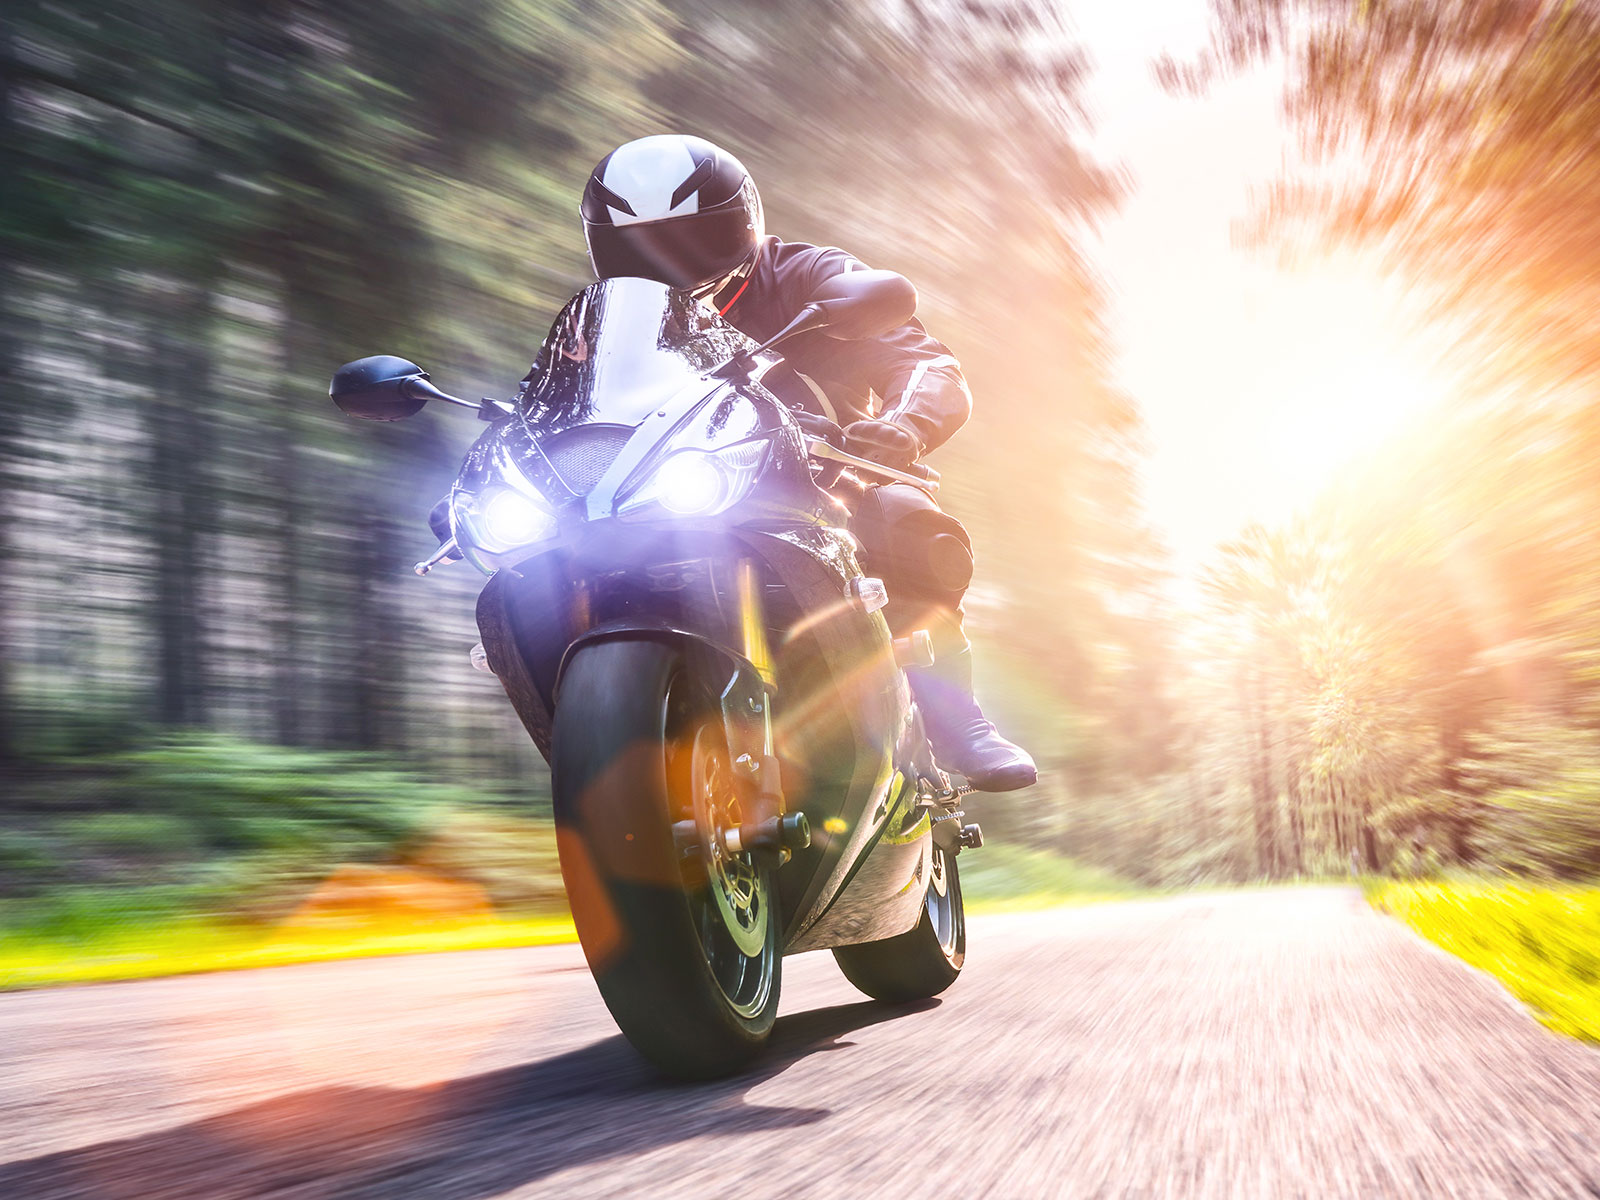 Motorcycle Accident Lawyer Woodland Hills - The Law Office of Kenneth L. Snyder